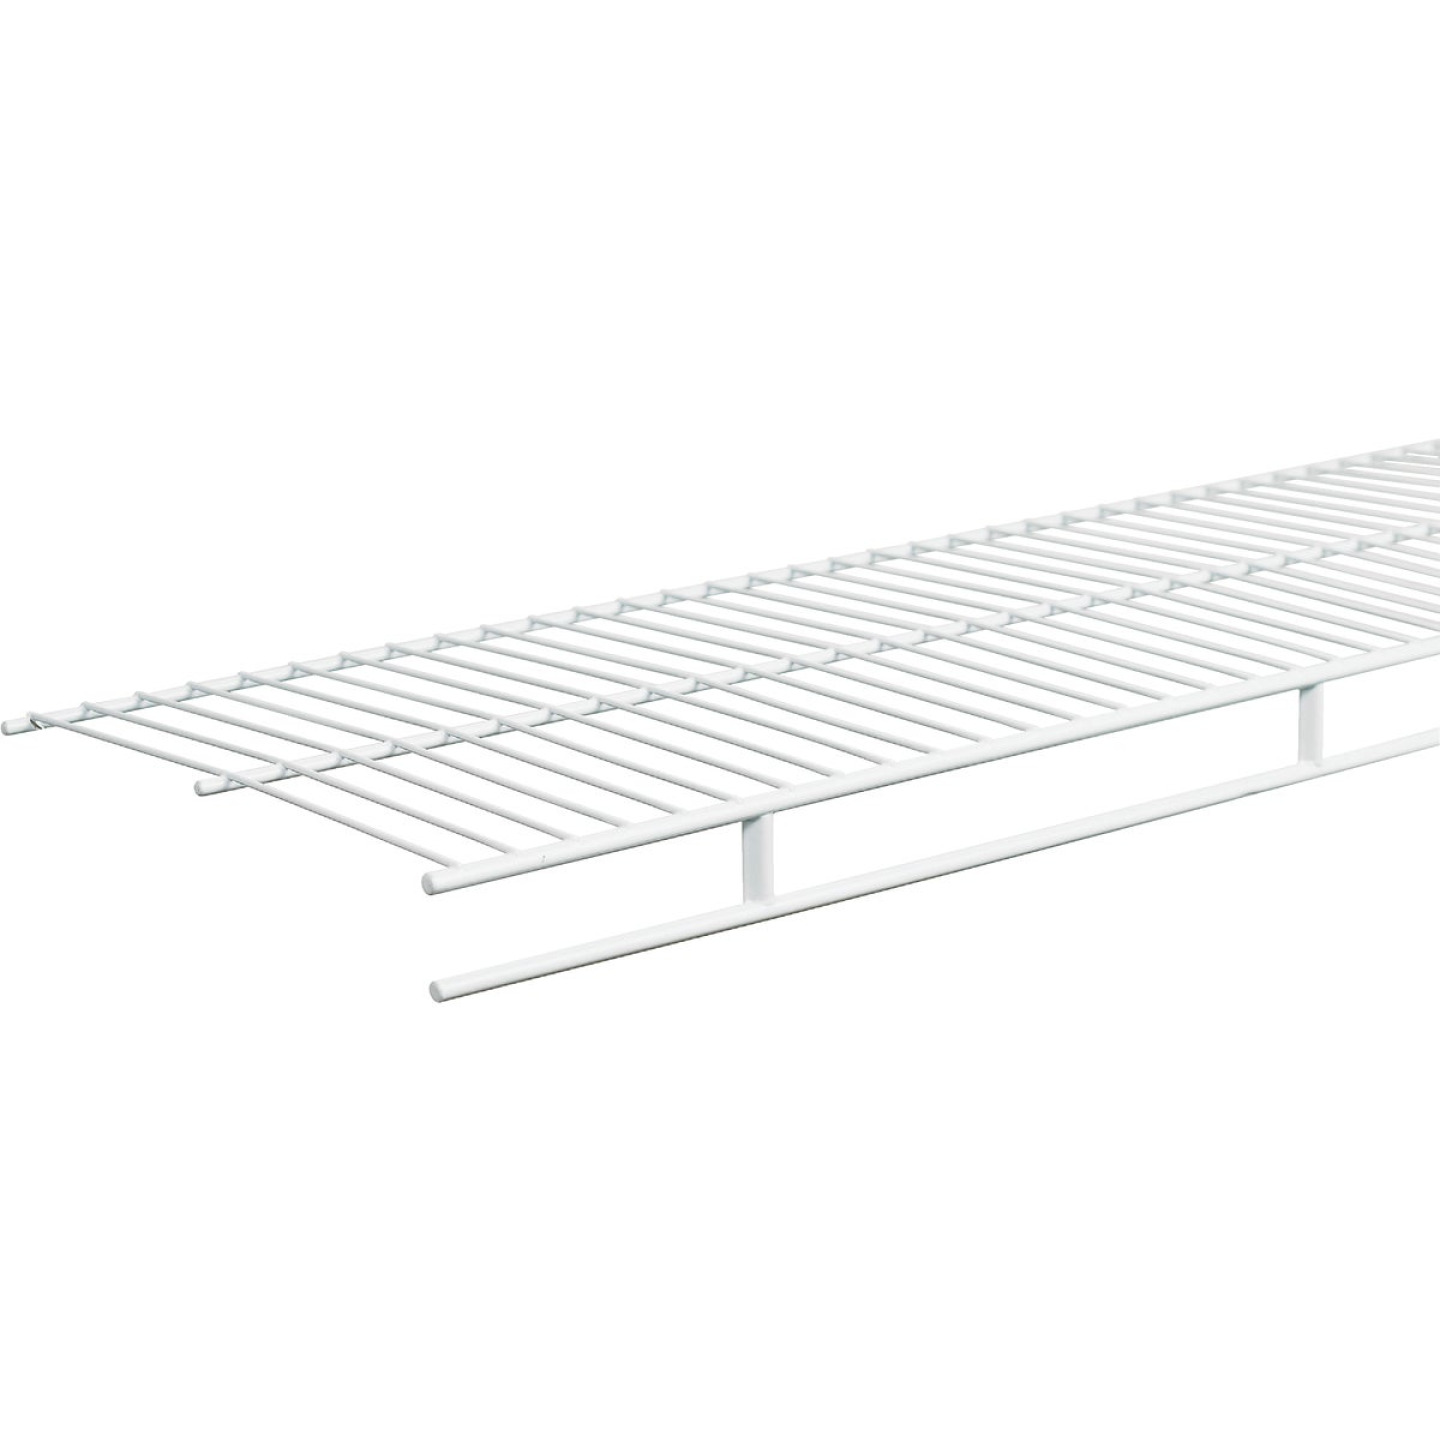 ClosetMaid 12 Ft. W. x 12 In. D. Contractor Pack Ventilated Shelf & Rod Closet Shelf, White (6-Pack) Image 1